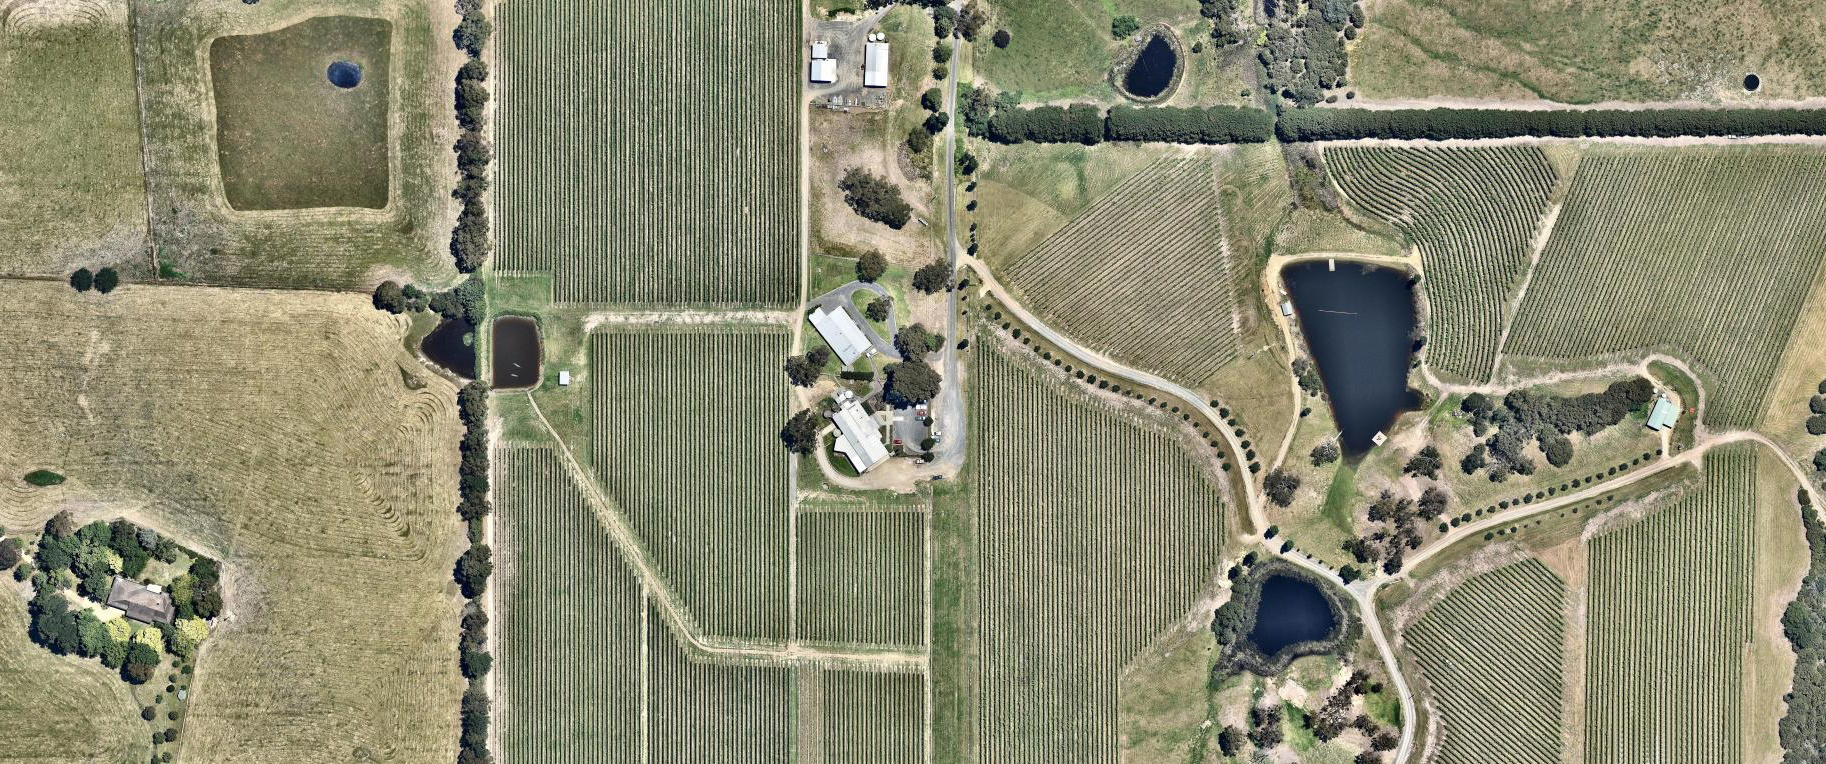 winery aerial site image